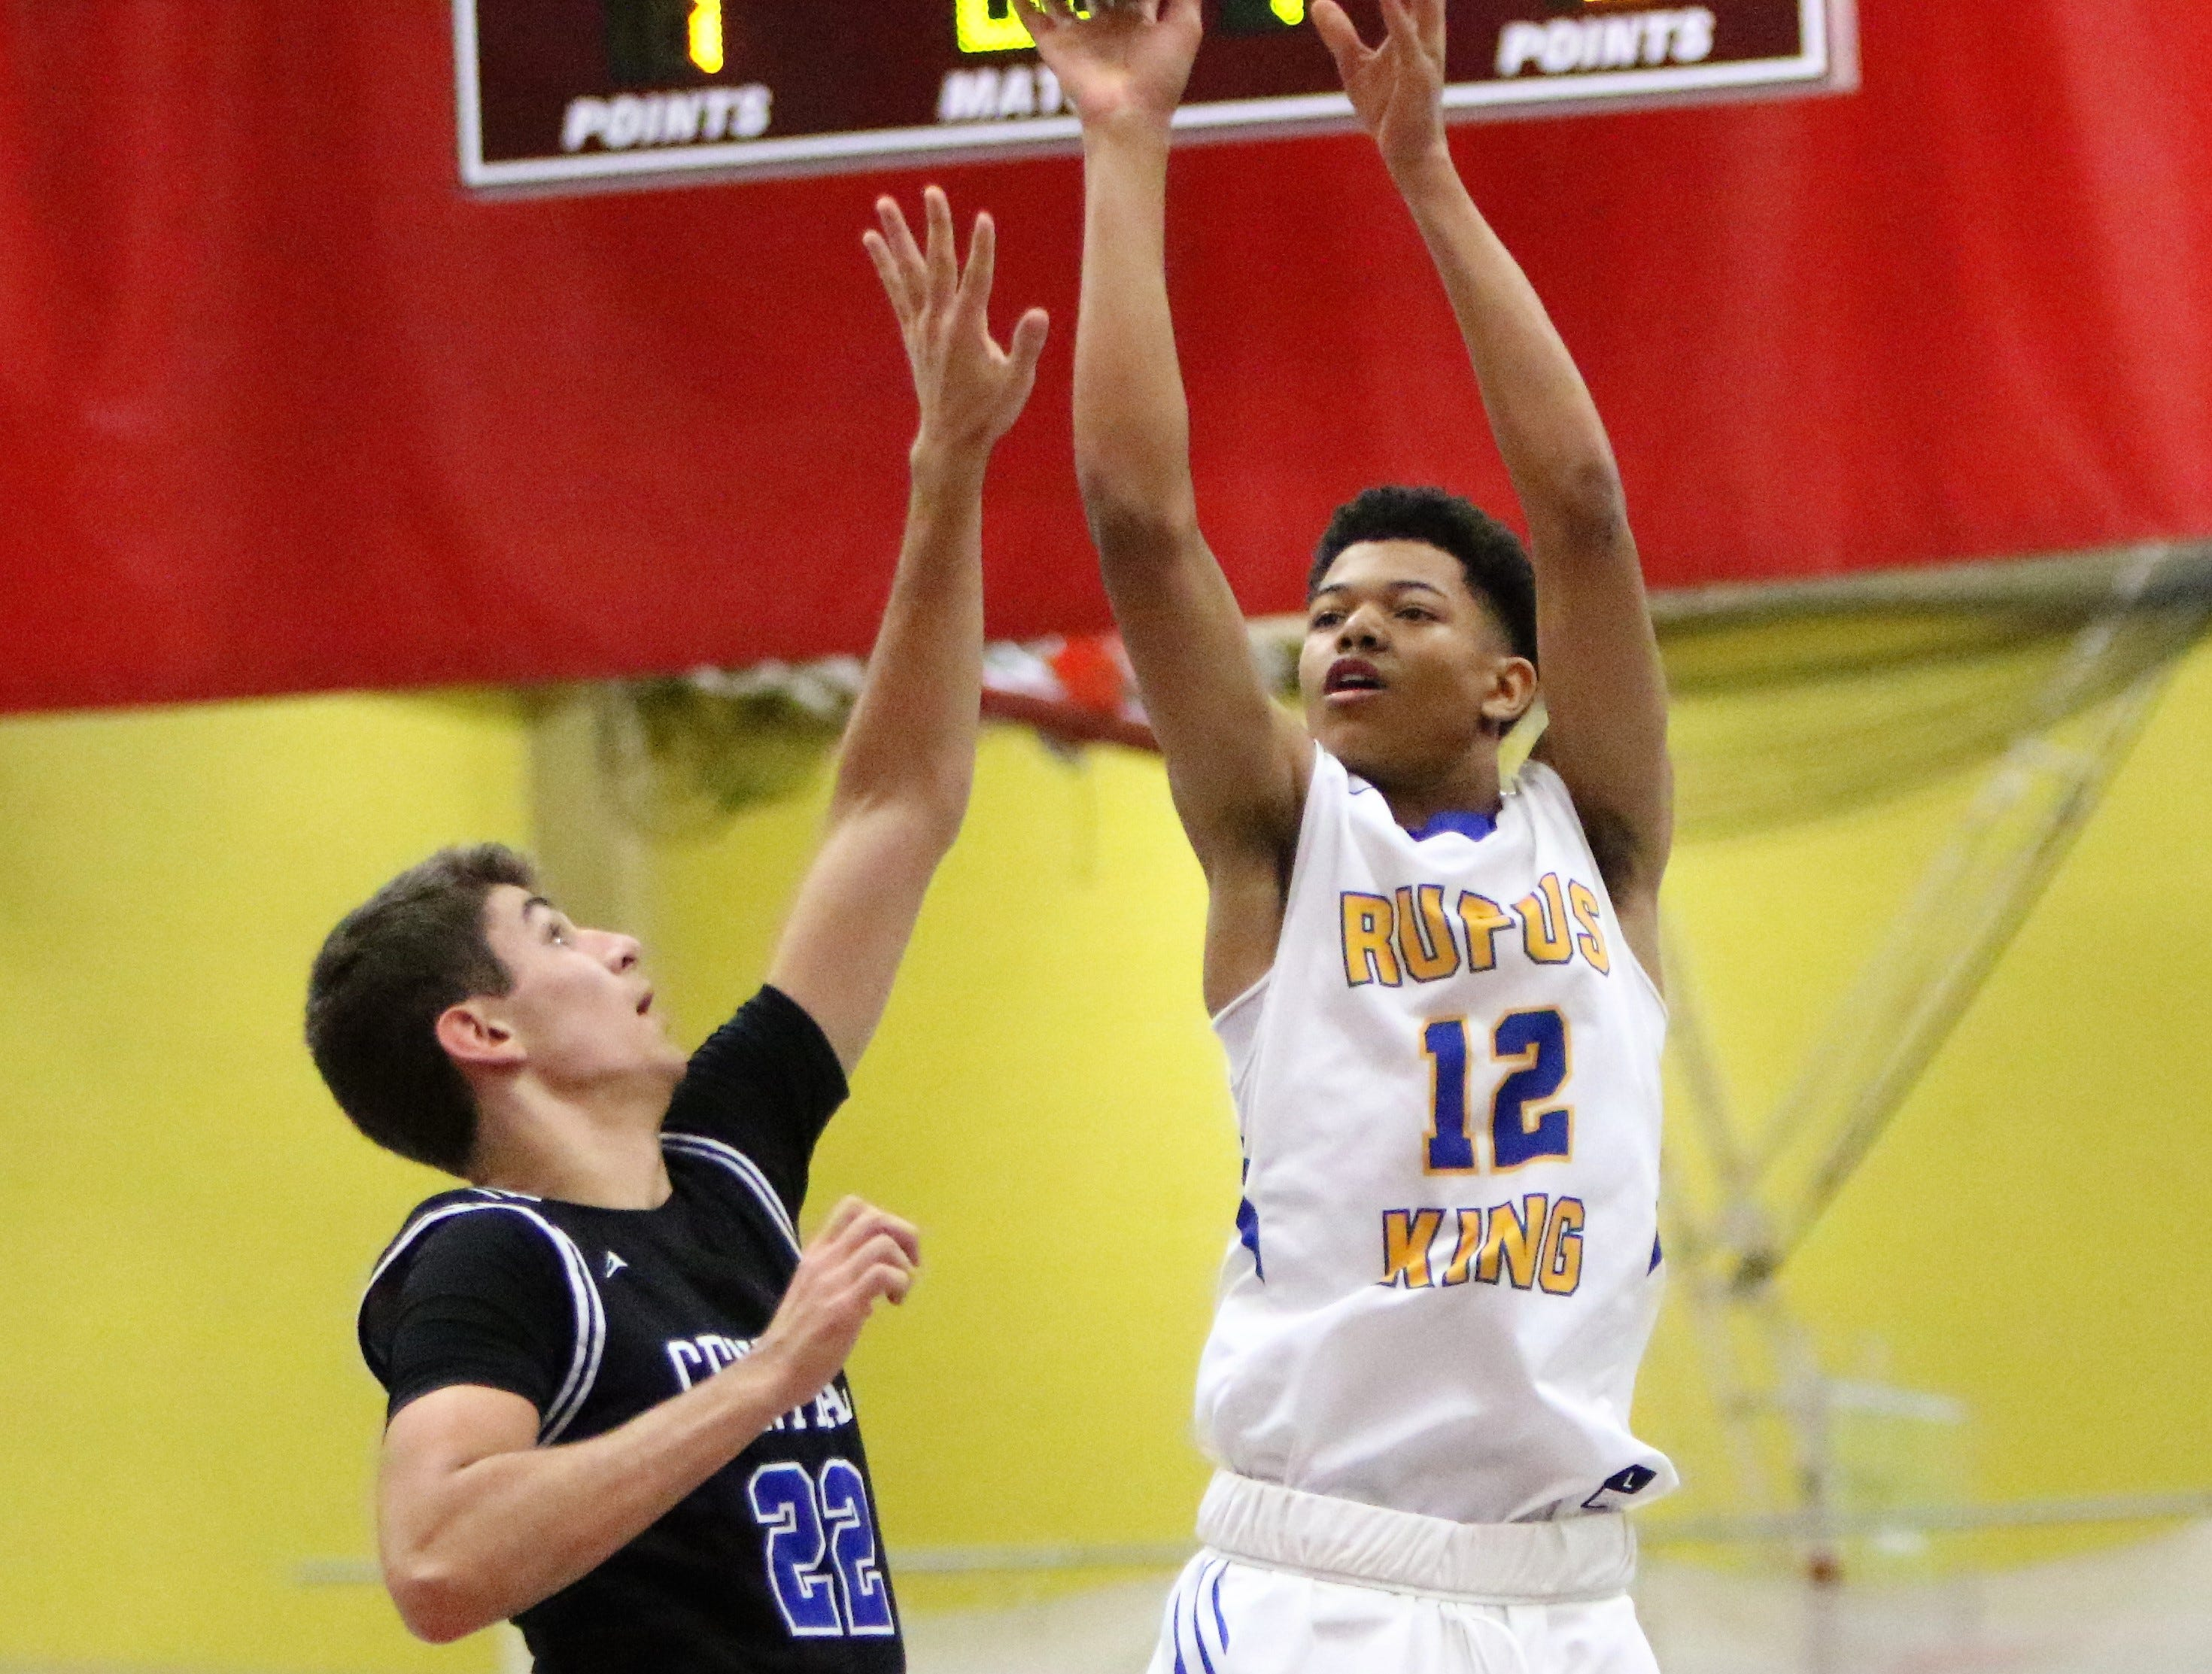 Milwaukee King sophomore Quinton Murrell goes up for a jumper while guarded by Ben Nau of Brookfield Central during the Terry Porter Classic on Saturday.